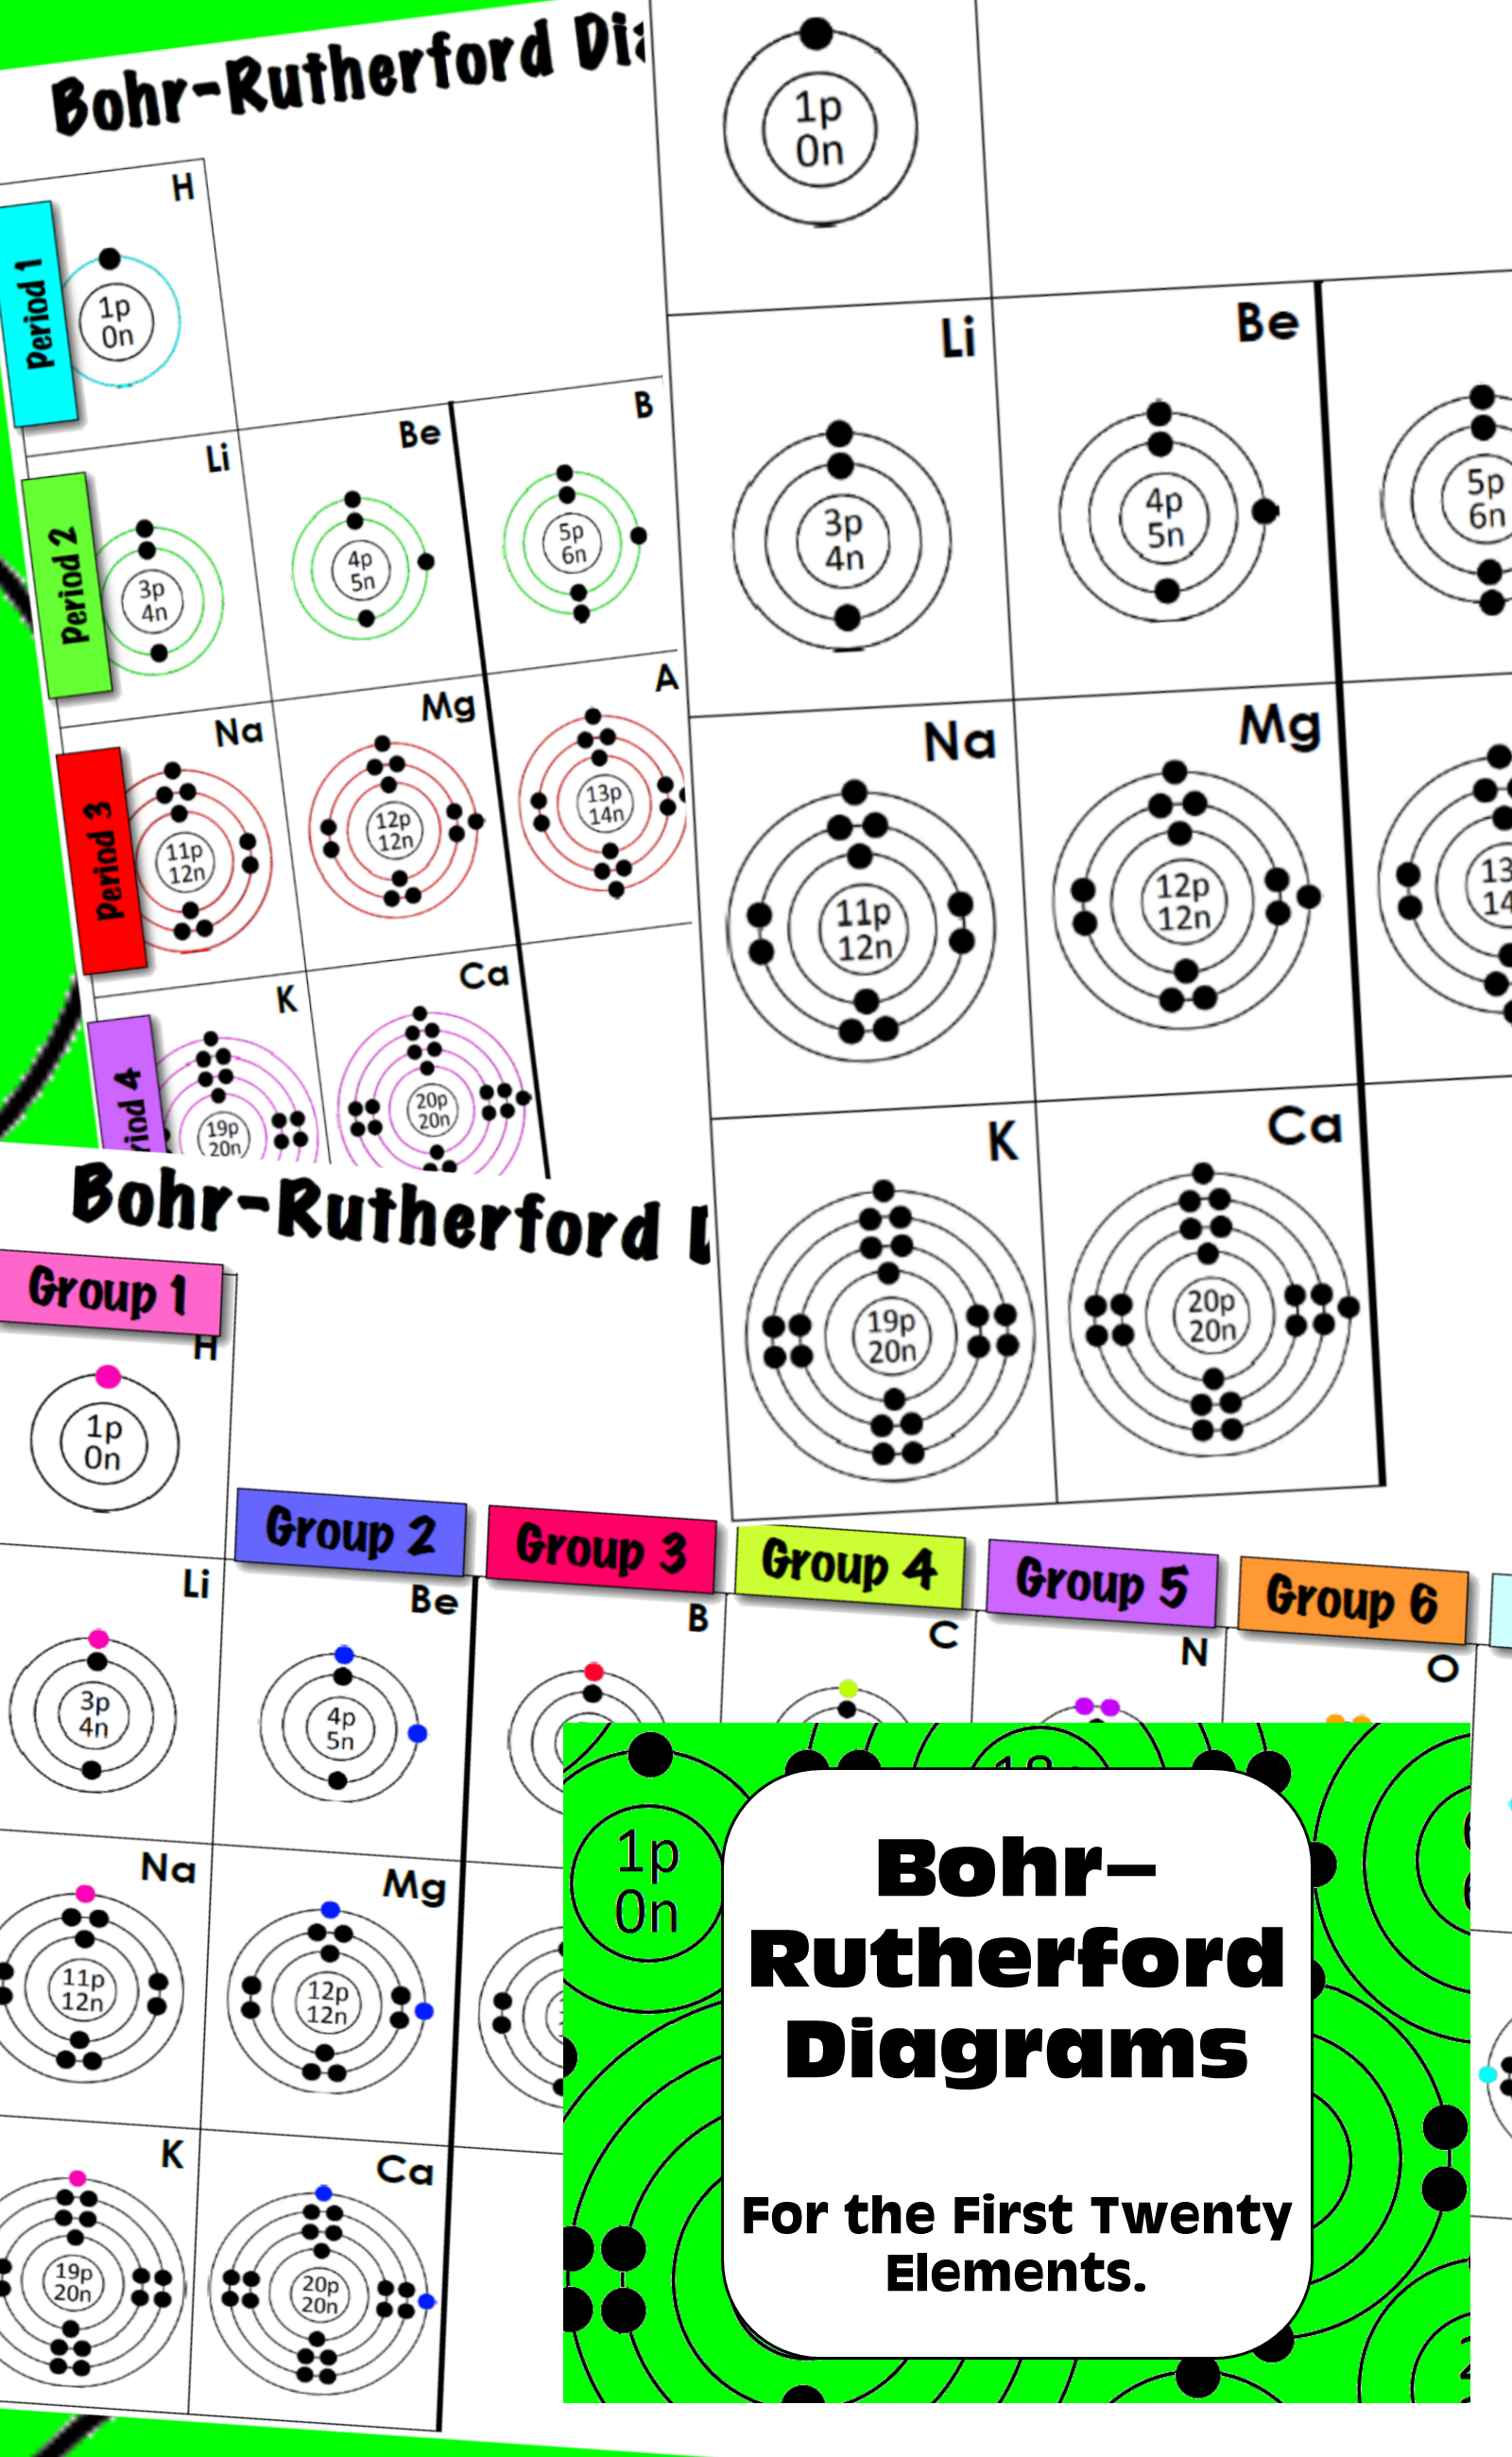 Bohr Models Bohr Rutherford Diagrams For The First Twenty Elements